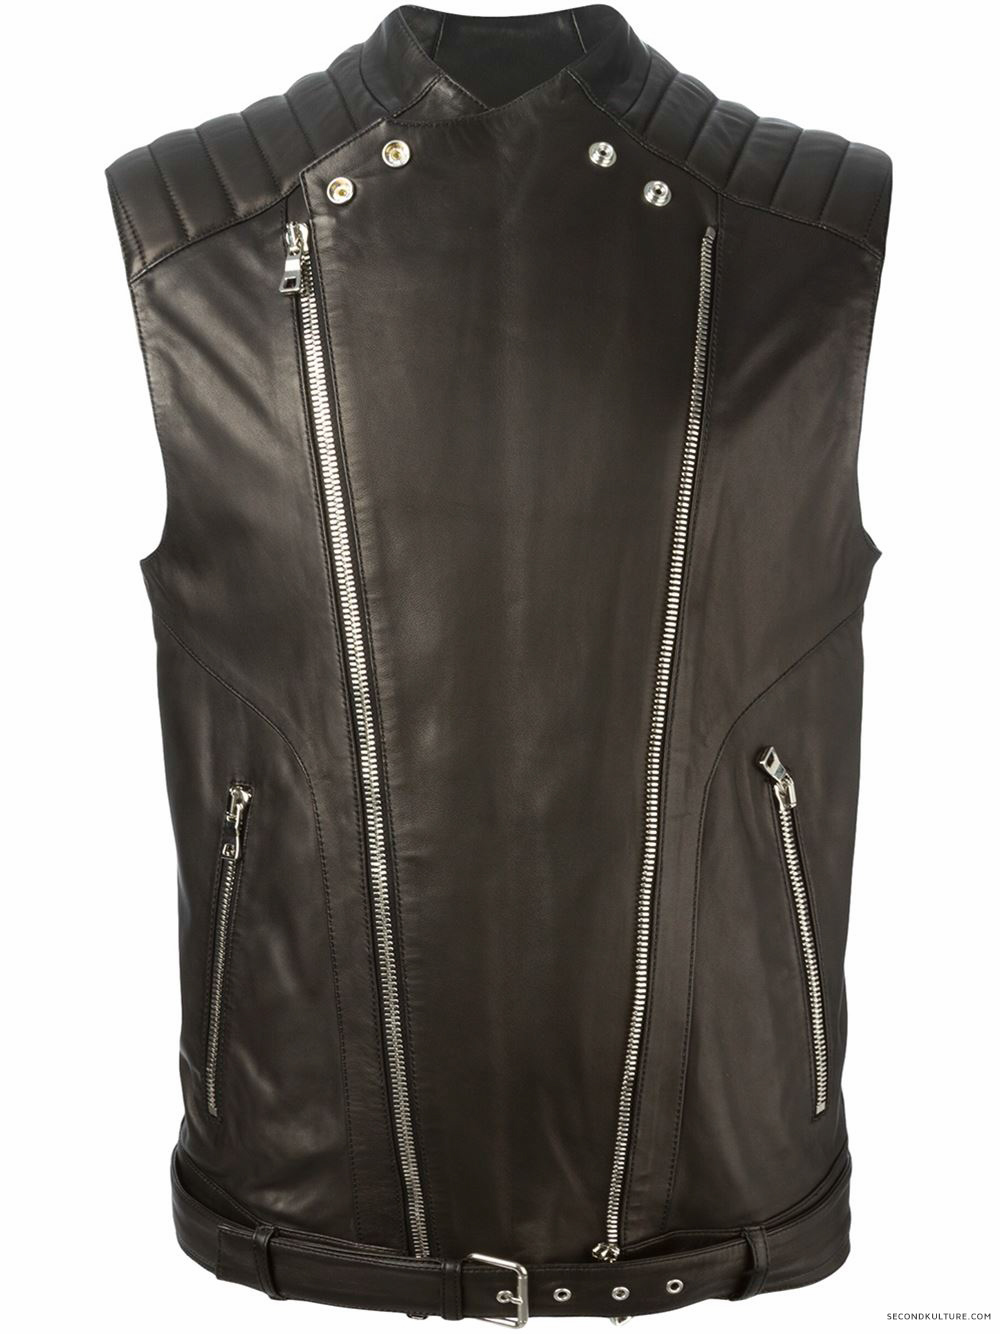 Balmain-Black-Biker-Leather-Zipped-Gilet-Vest-2015-2016-1